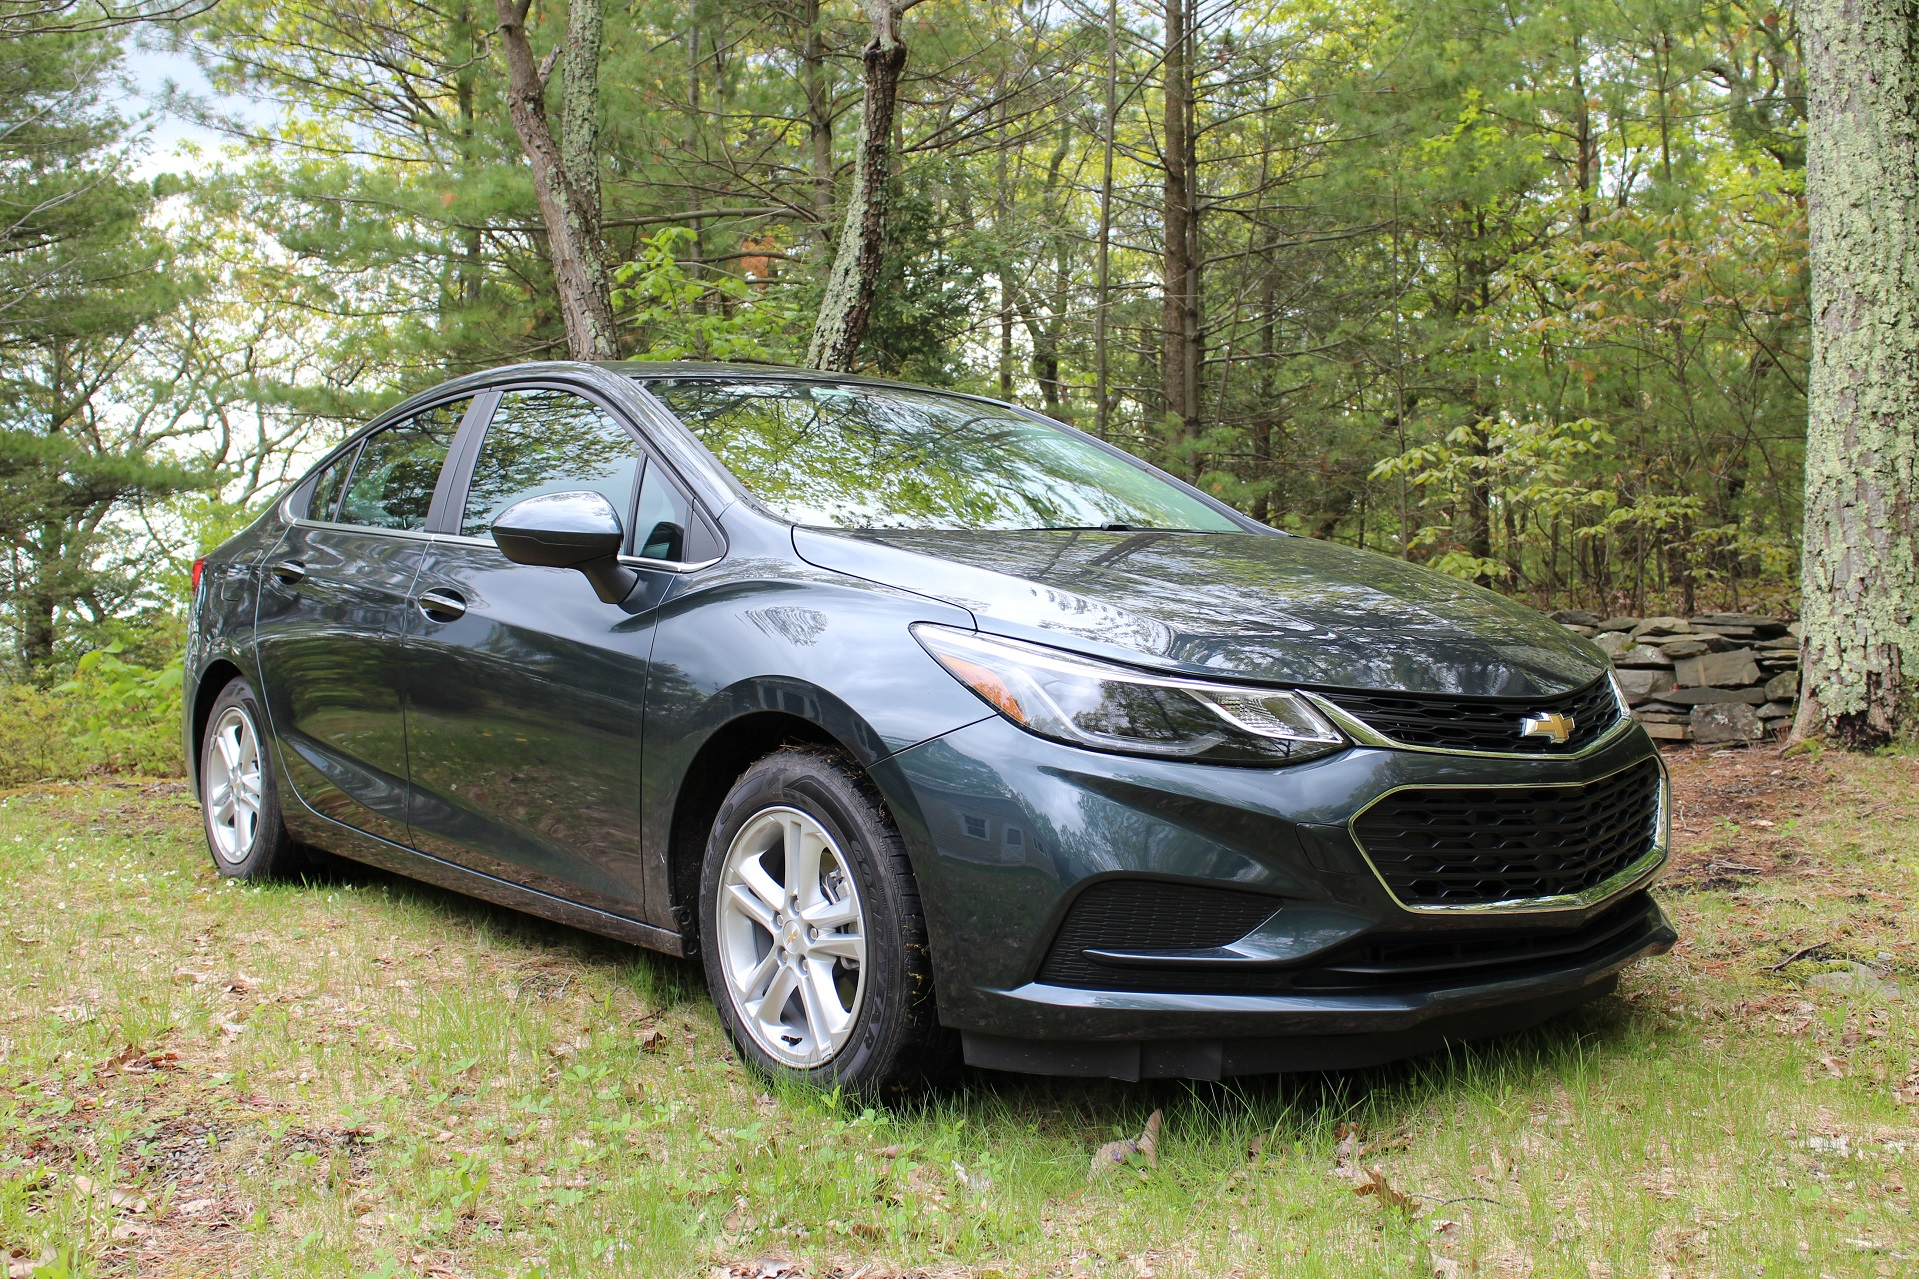 2017 Chevrolet Cruze Diesel Fuel Economy Review For Automatic 6 9 Engine Diagram Manual Versions